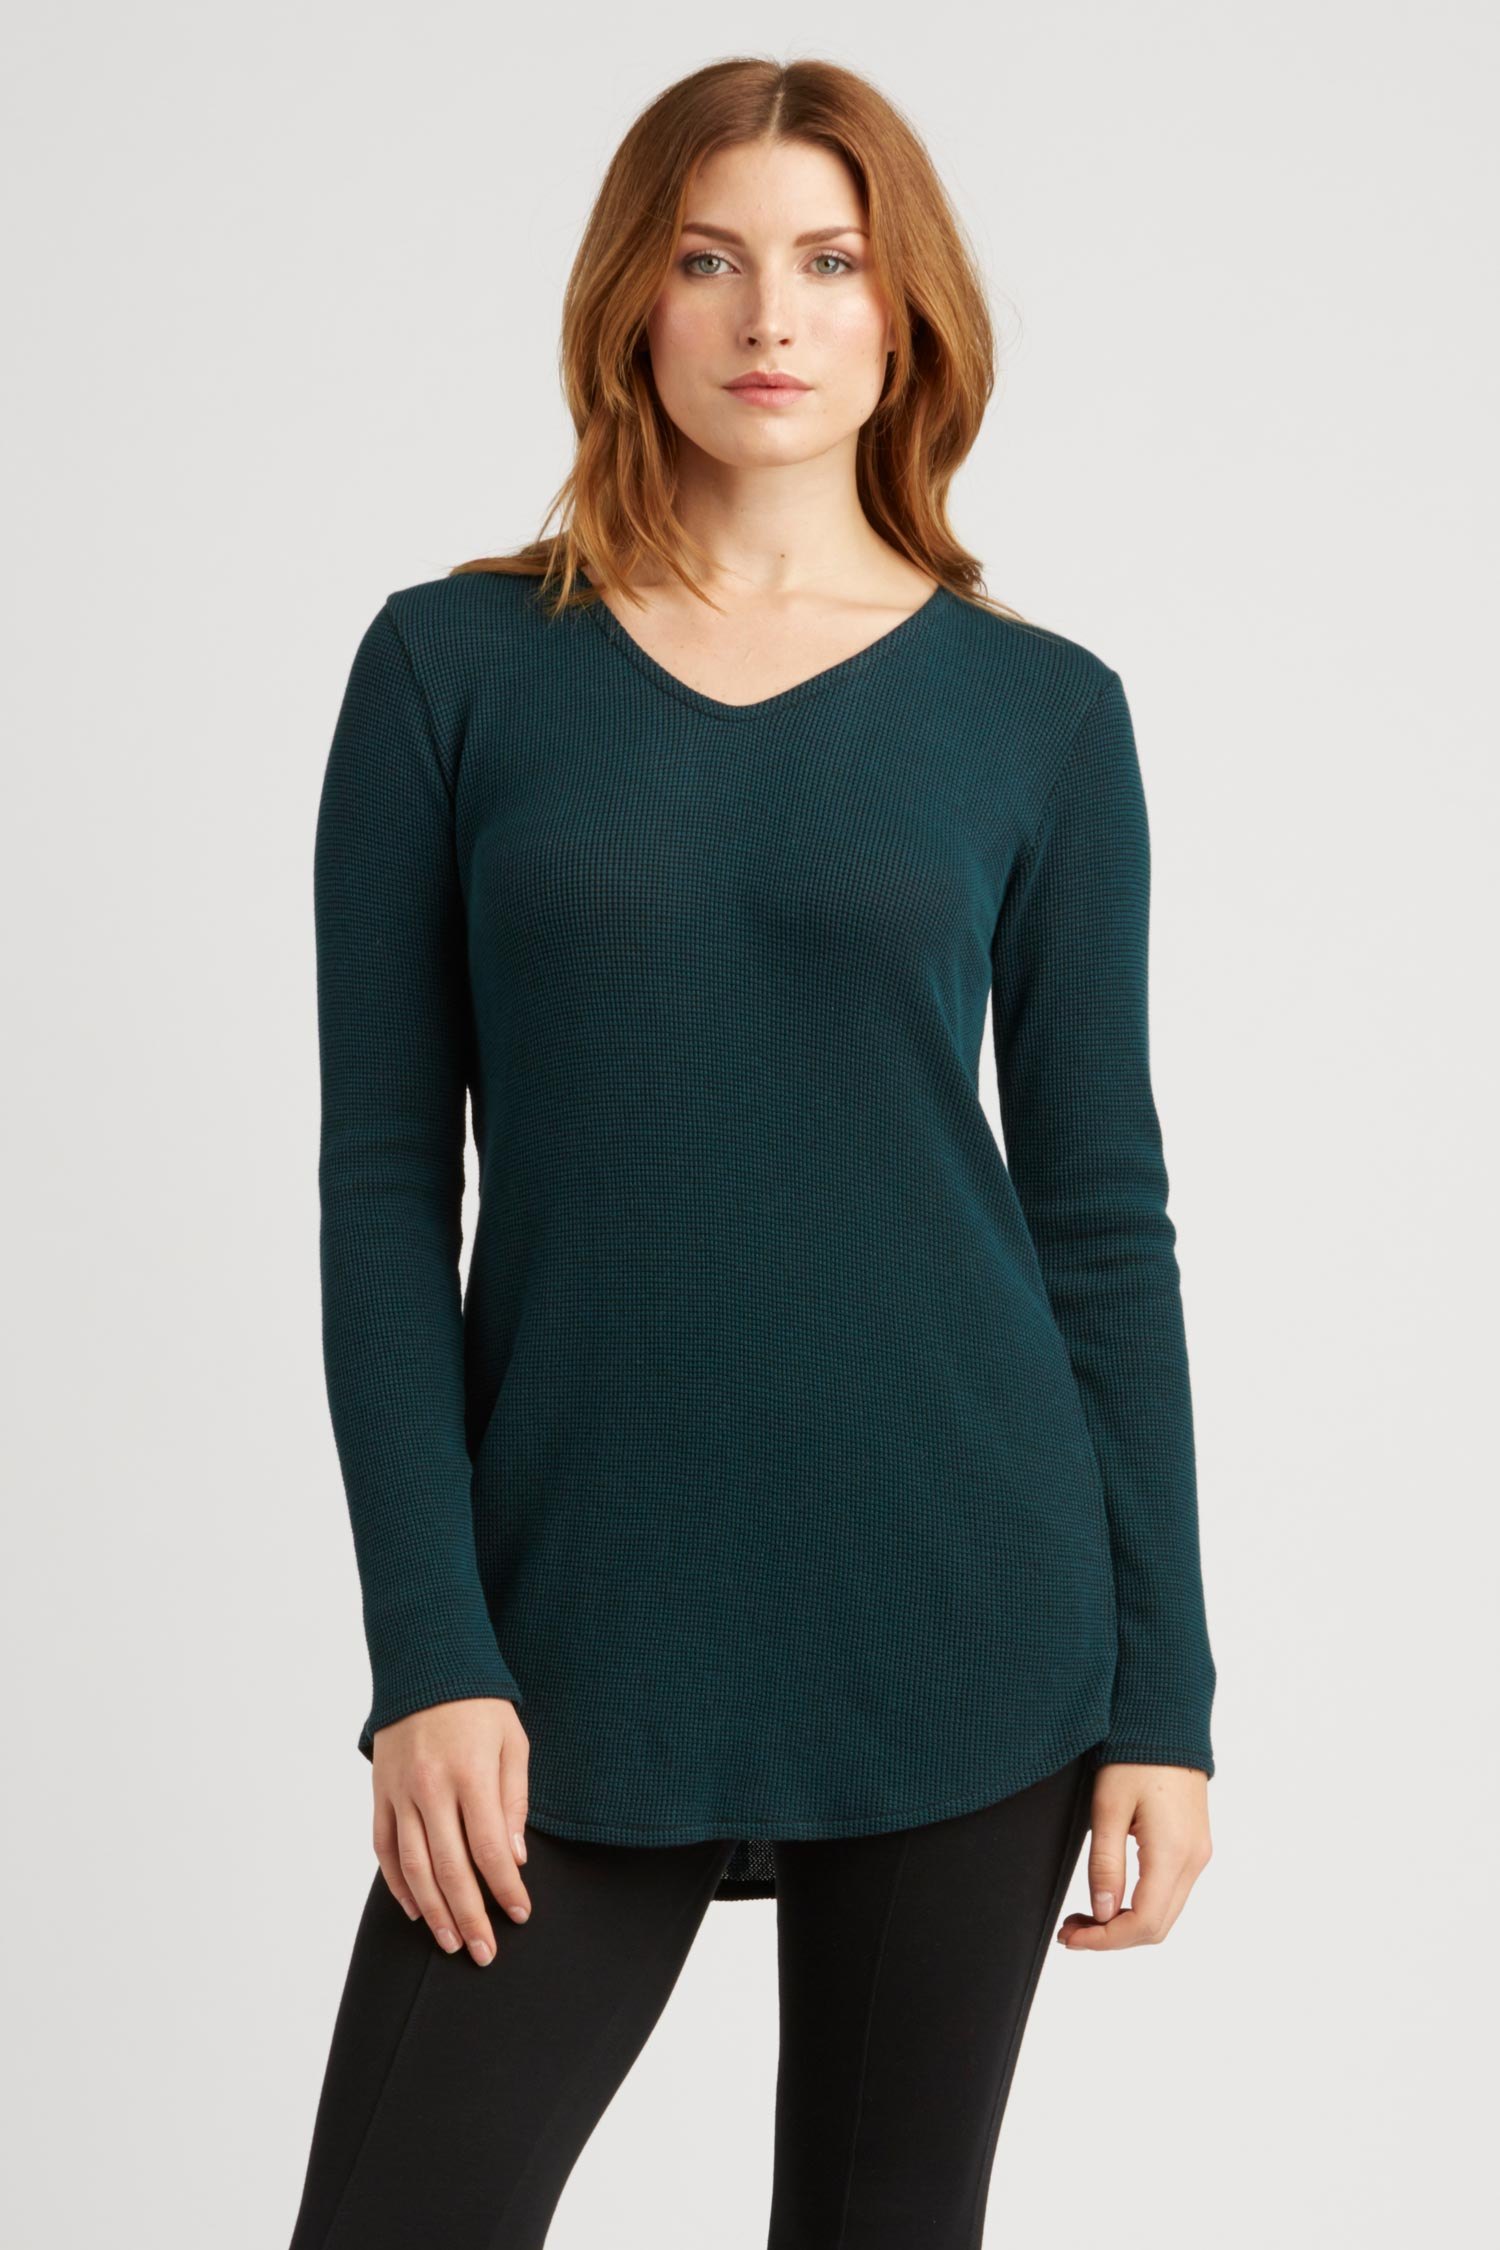 Womens Top Teal Waffle Tie Back Pullover | Sustainable Fashion